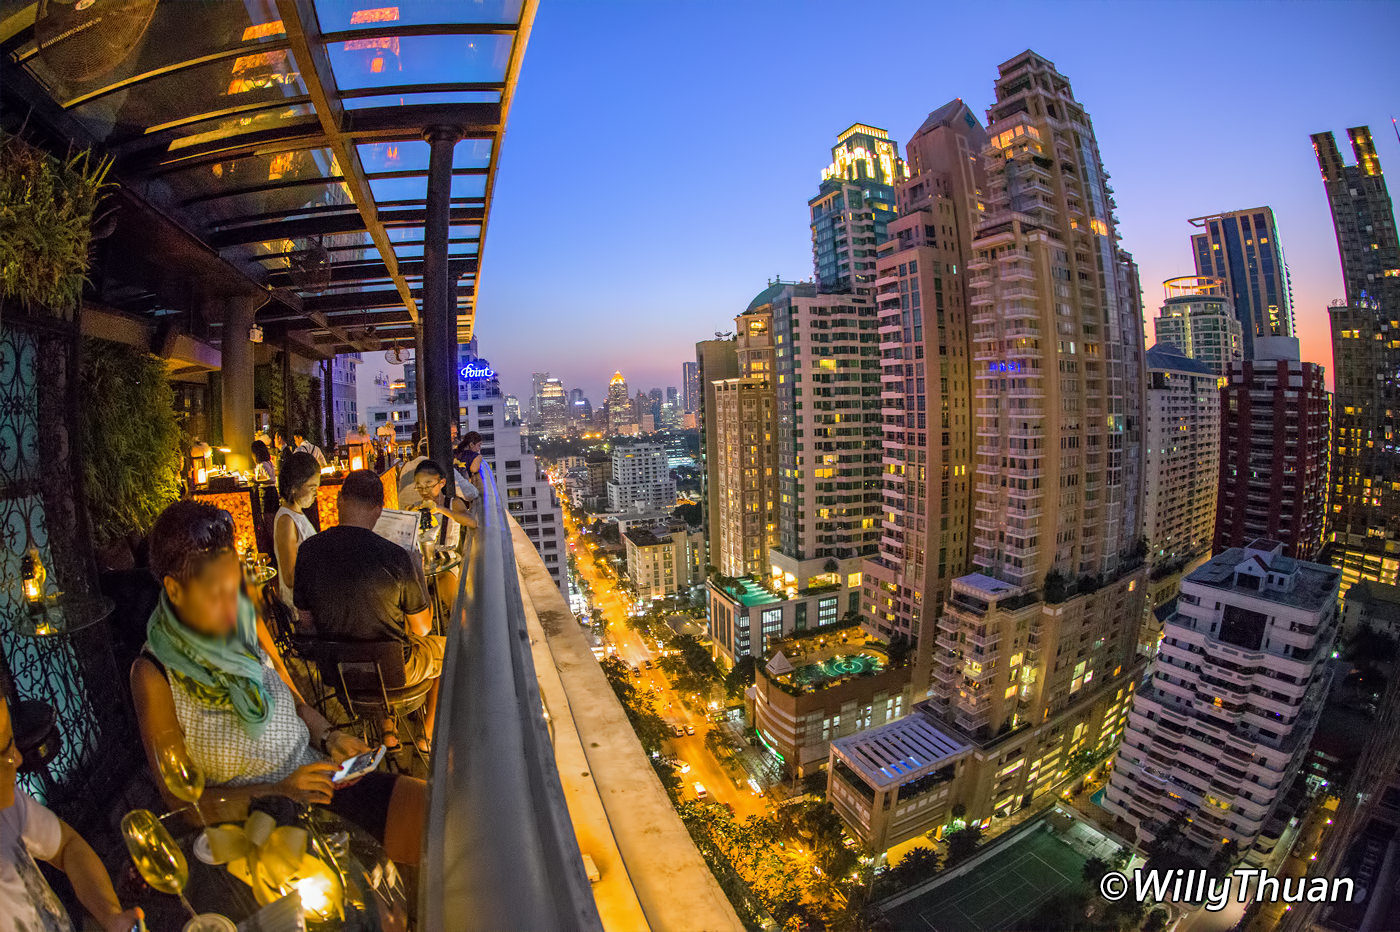 Speakeasy Rooftop Bar Bangkok at The Muse Hotel